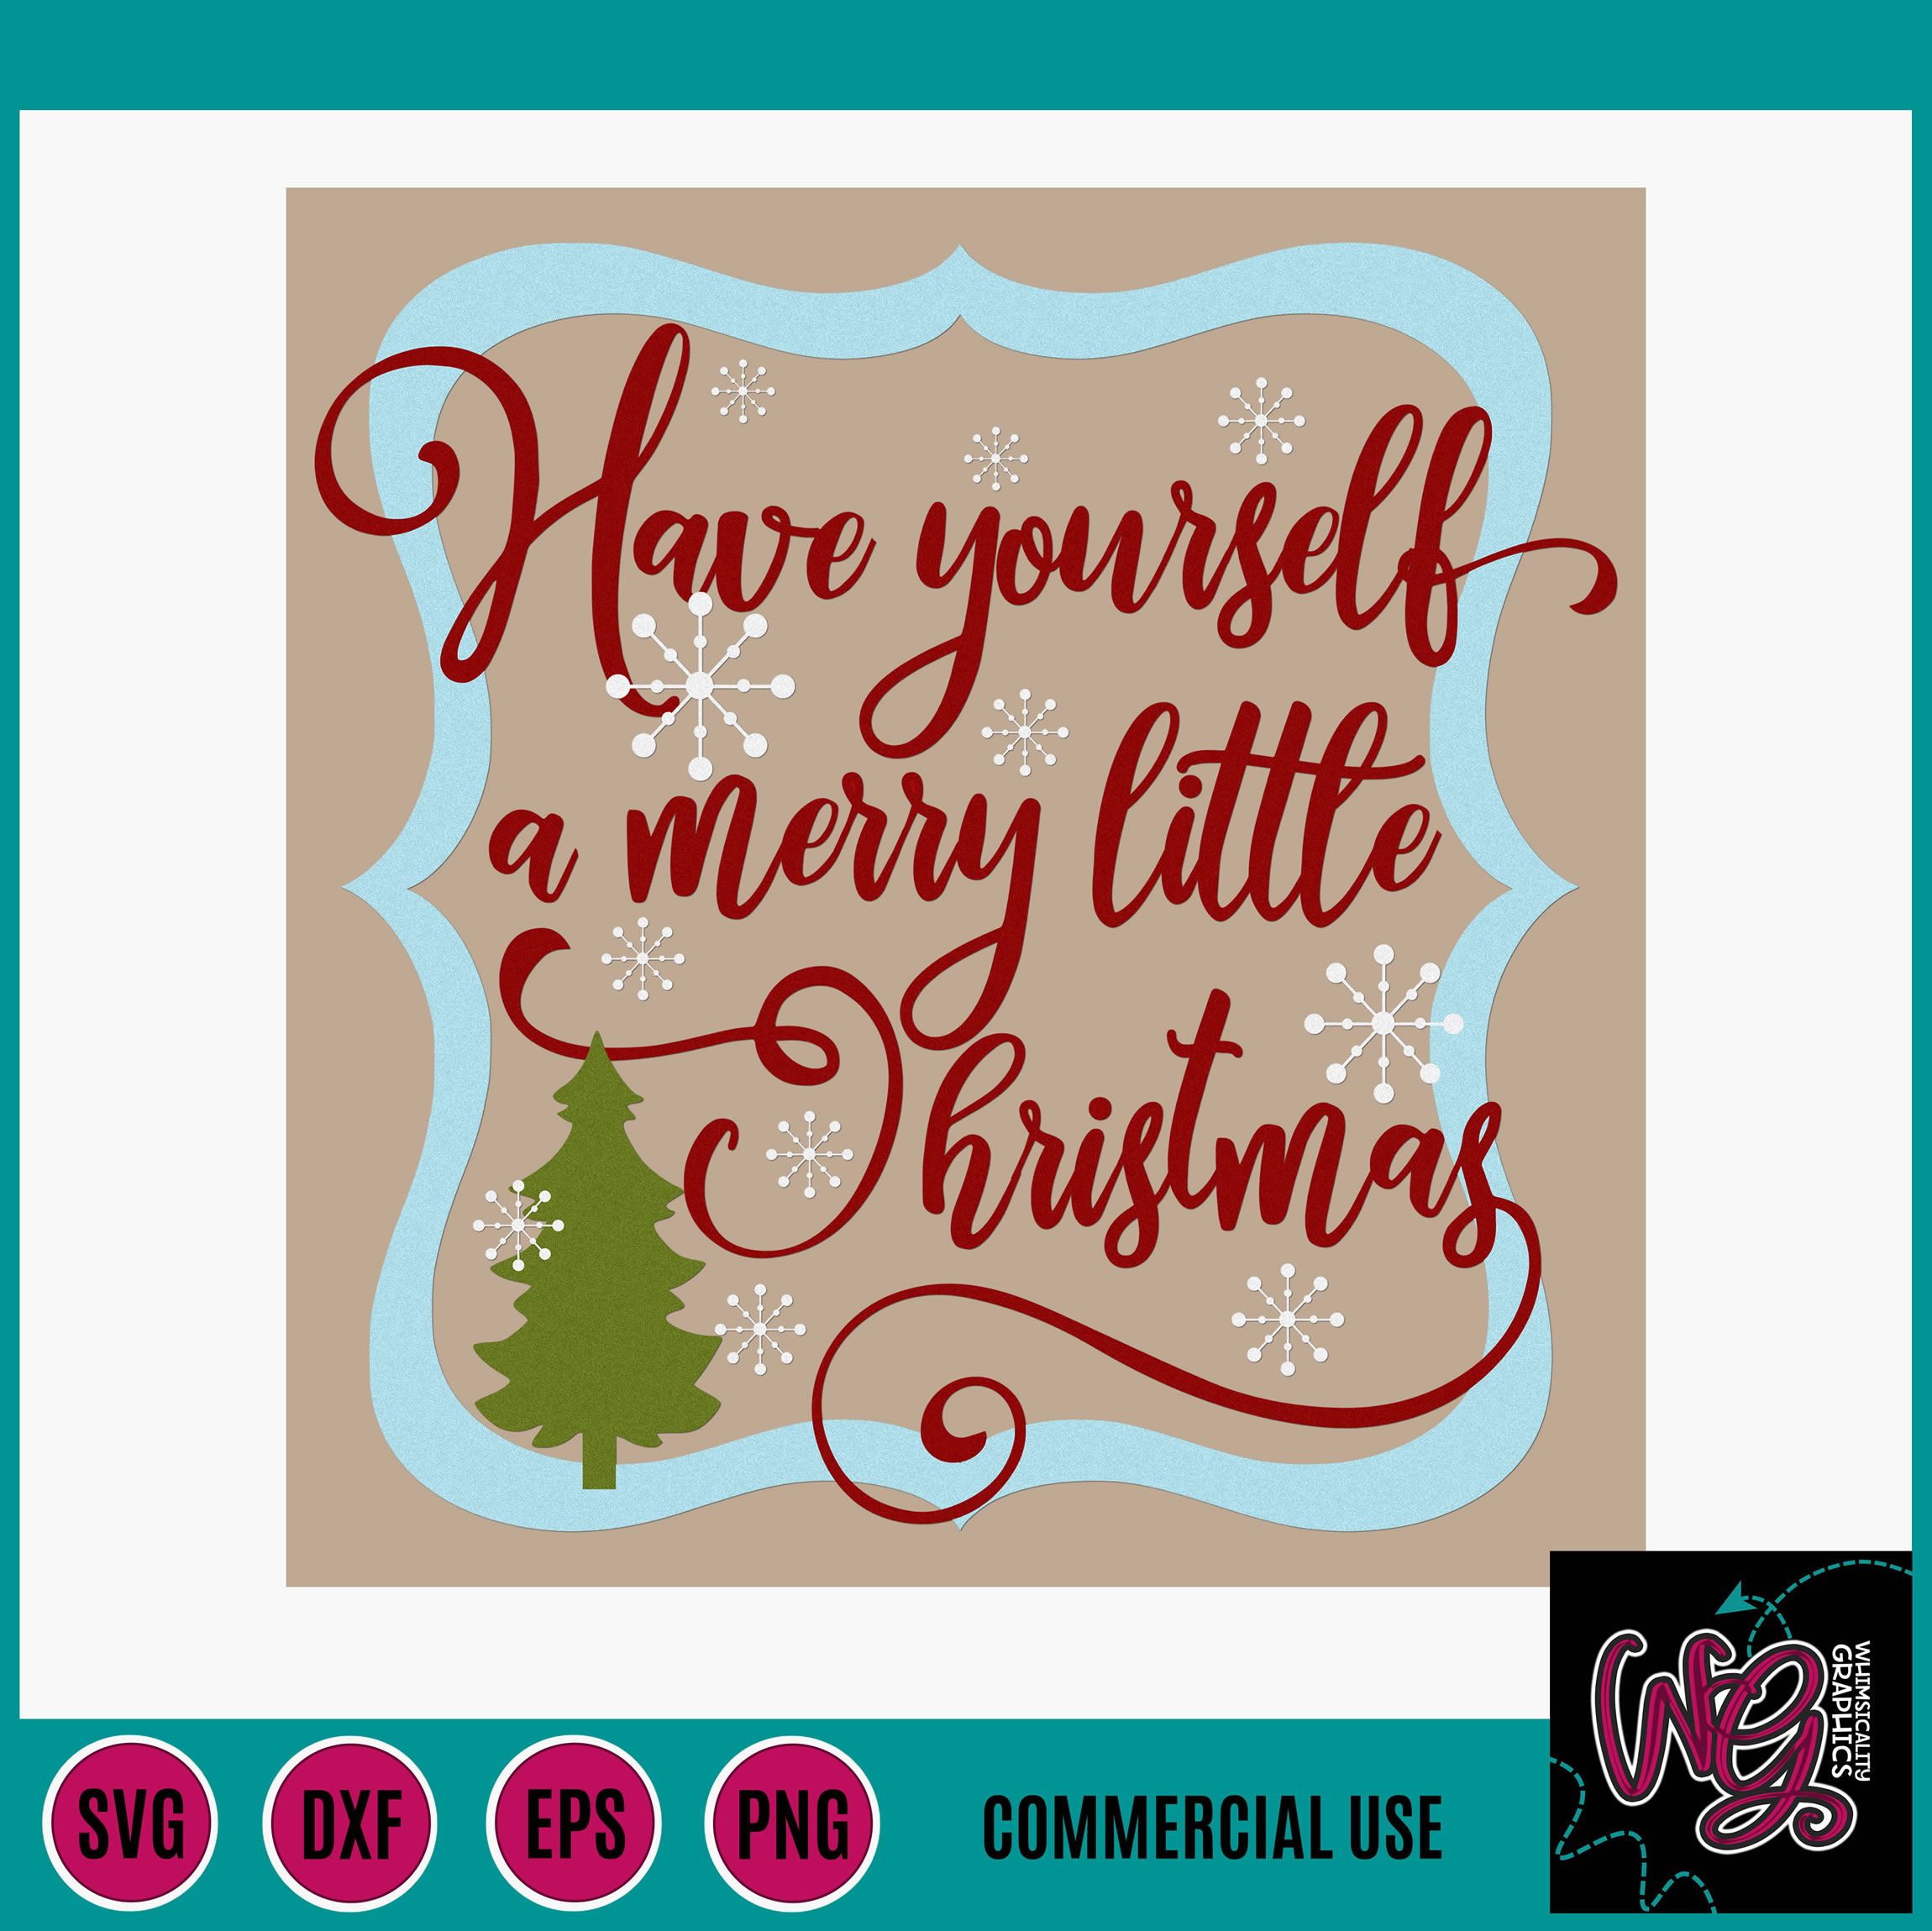 Have Yourself A Merry Little Christmas.Have Yourself A Merry Little Christmas Svg Dxf Png Eps